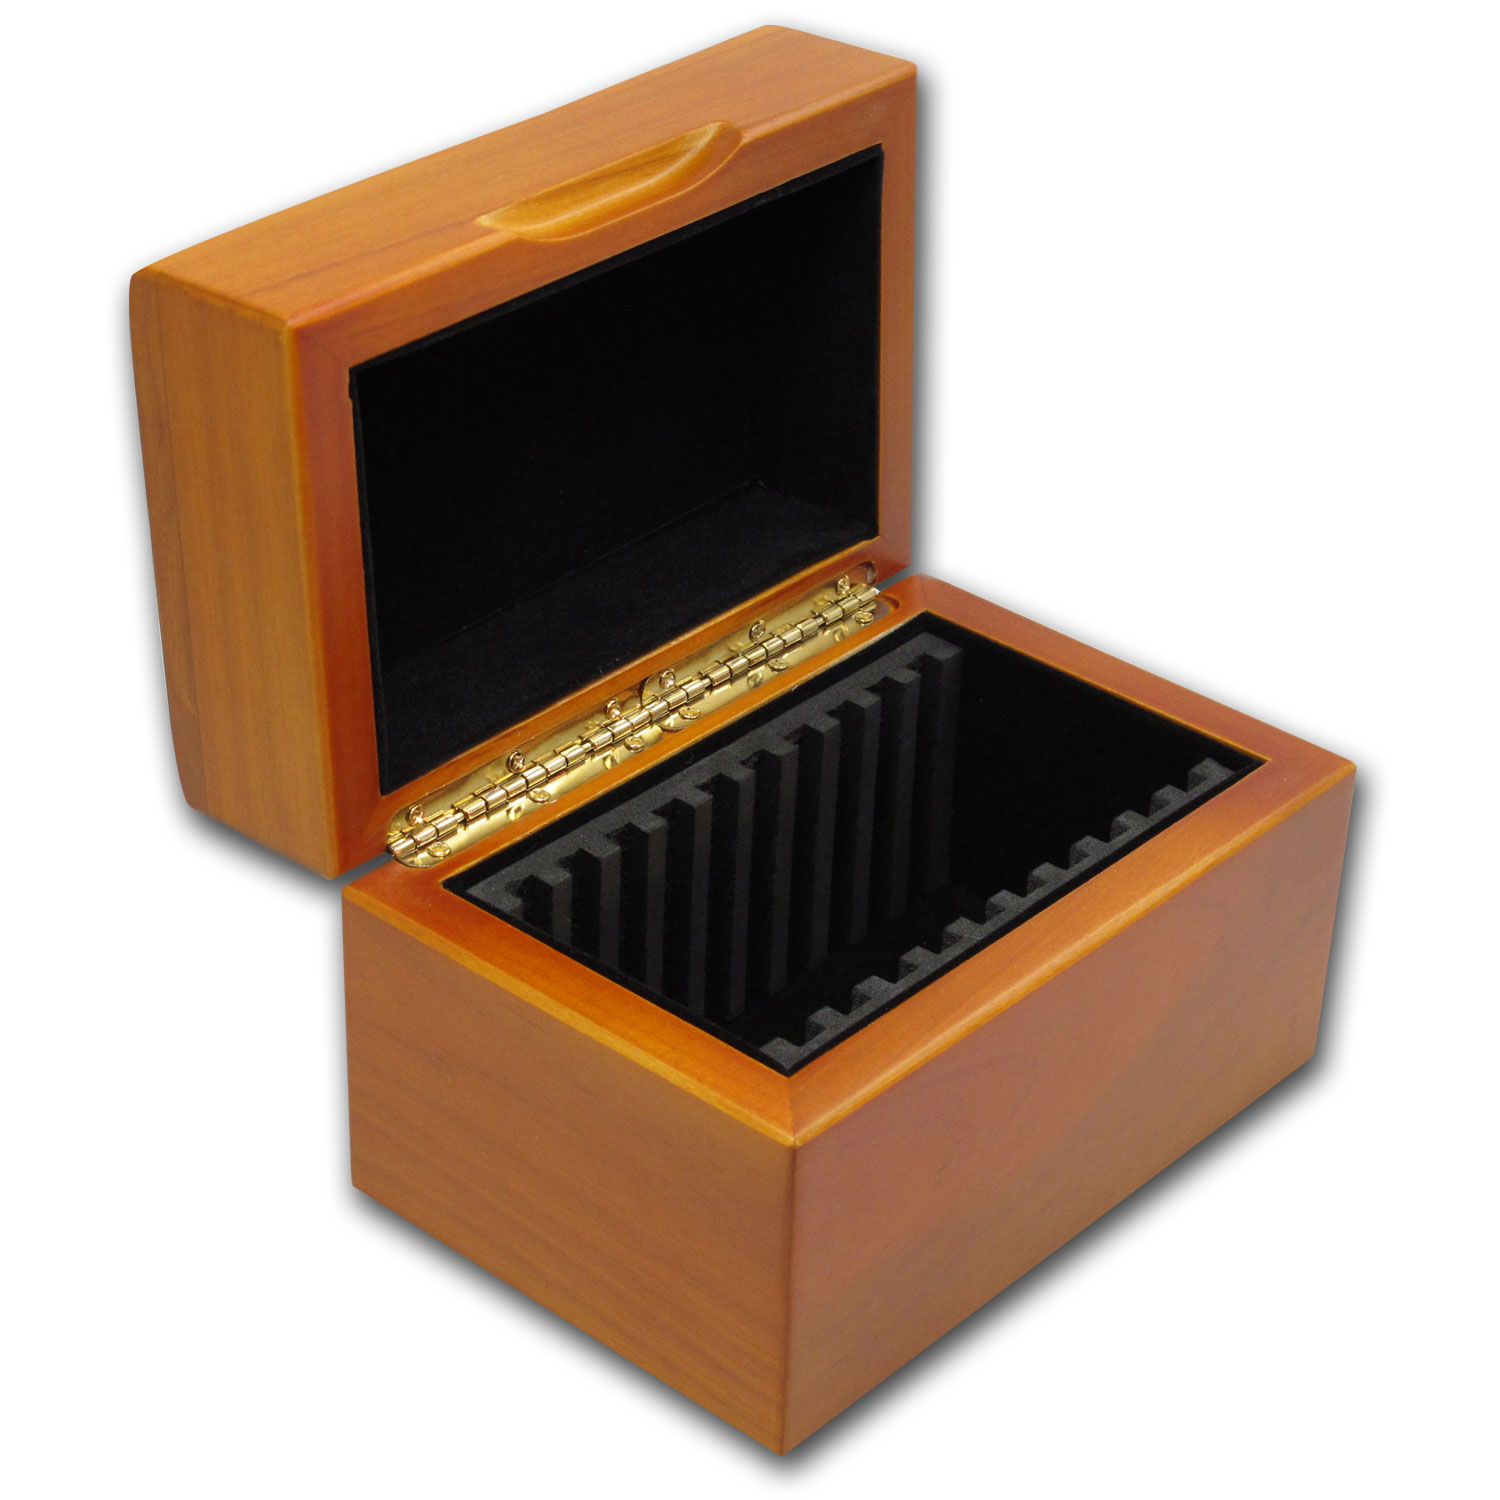 Wooden Slab Gift Box - Ten Slab